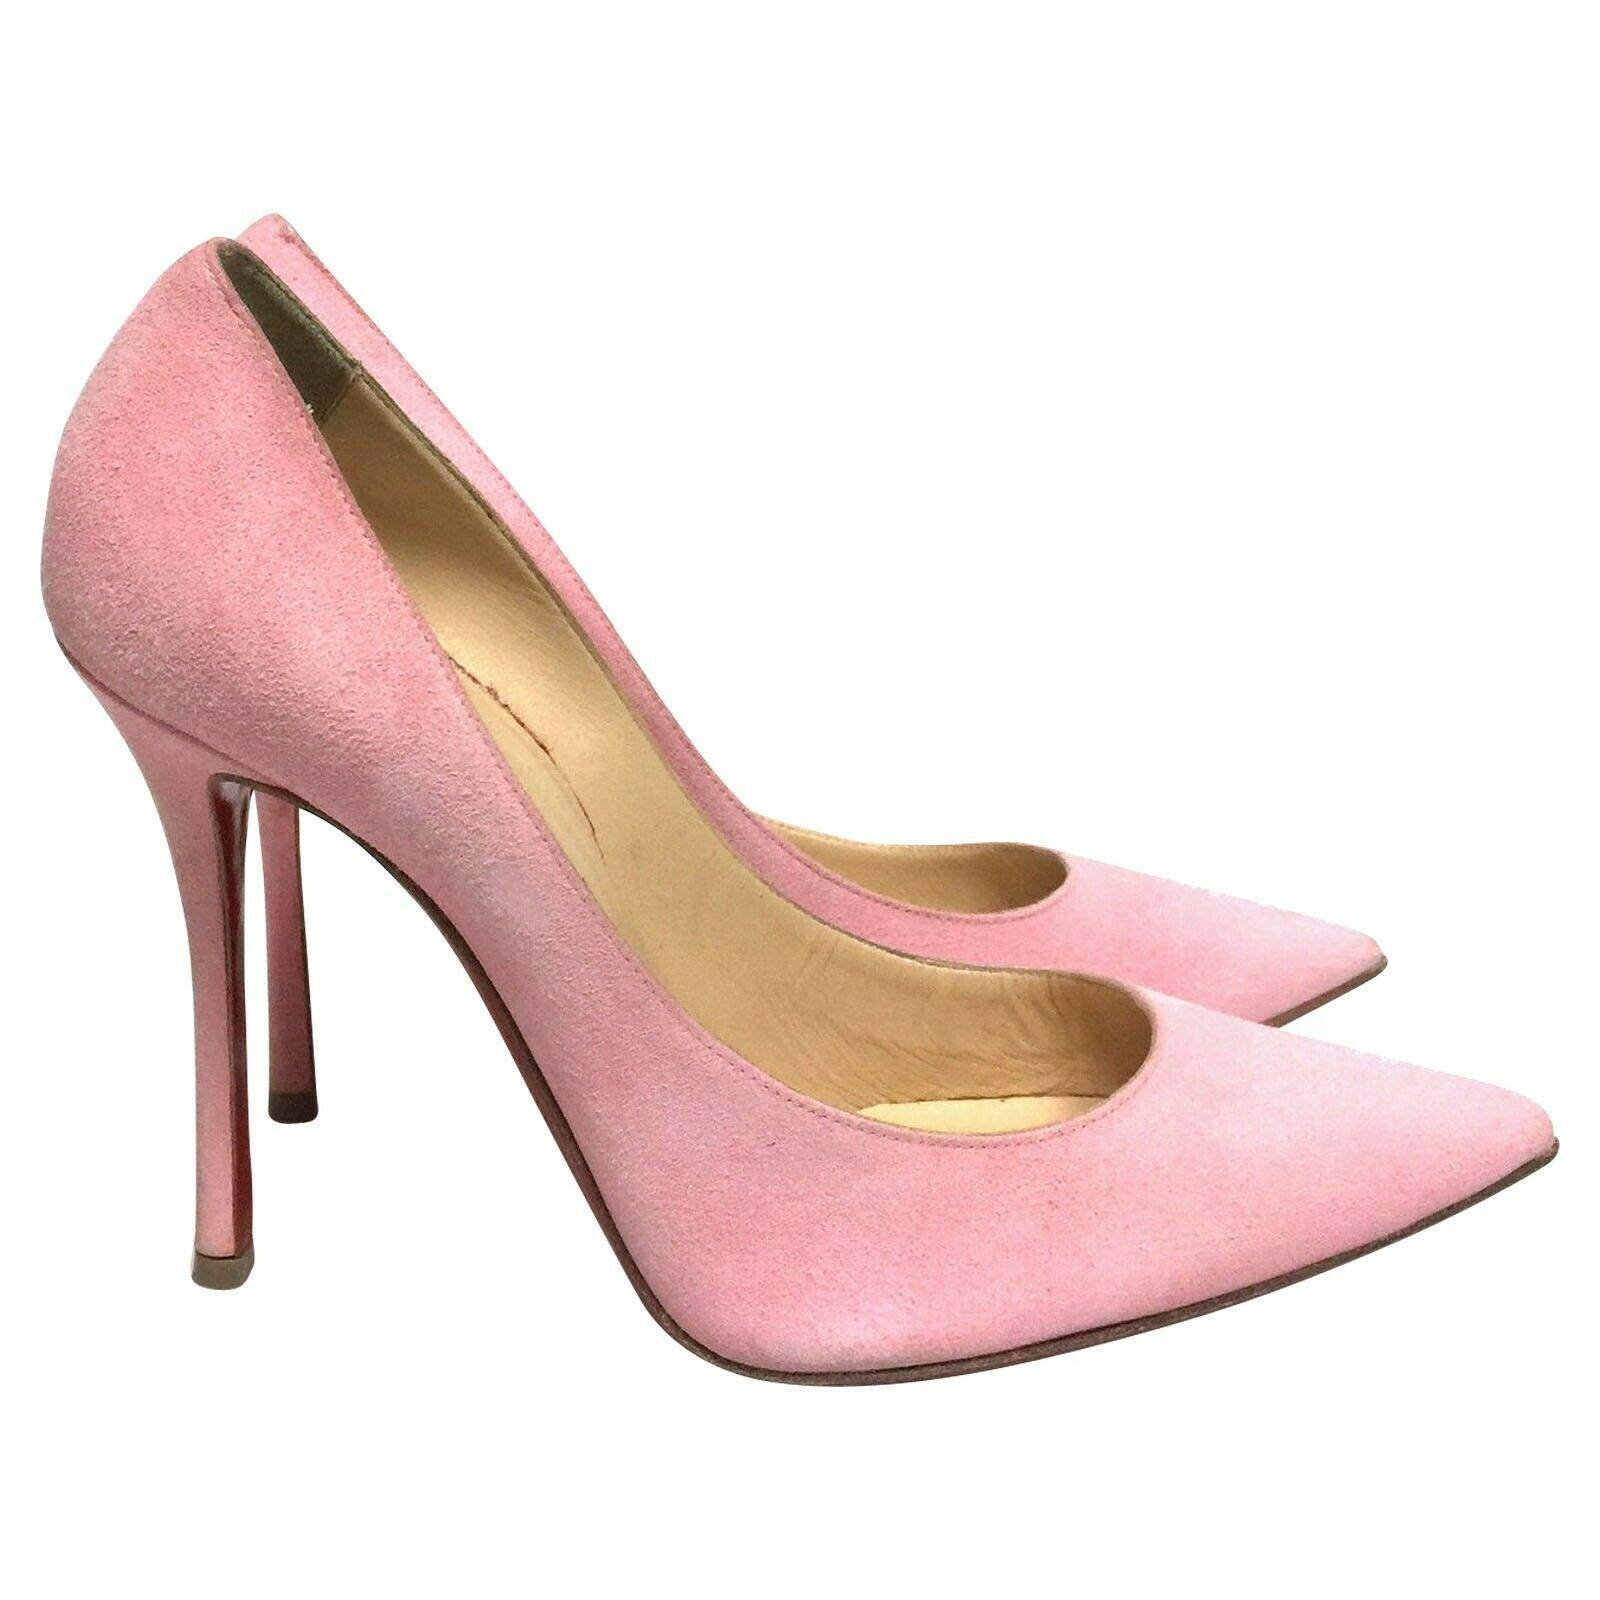 CHRISTIAN LOUBOUTIN Decoltish 100 Dolly Pink Suede Heels, size 38,5